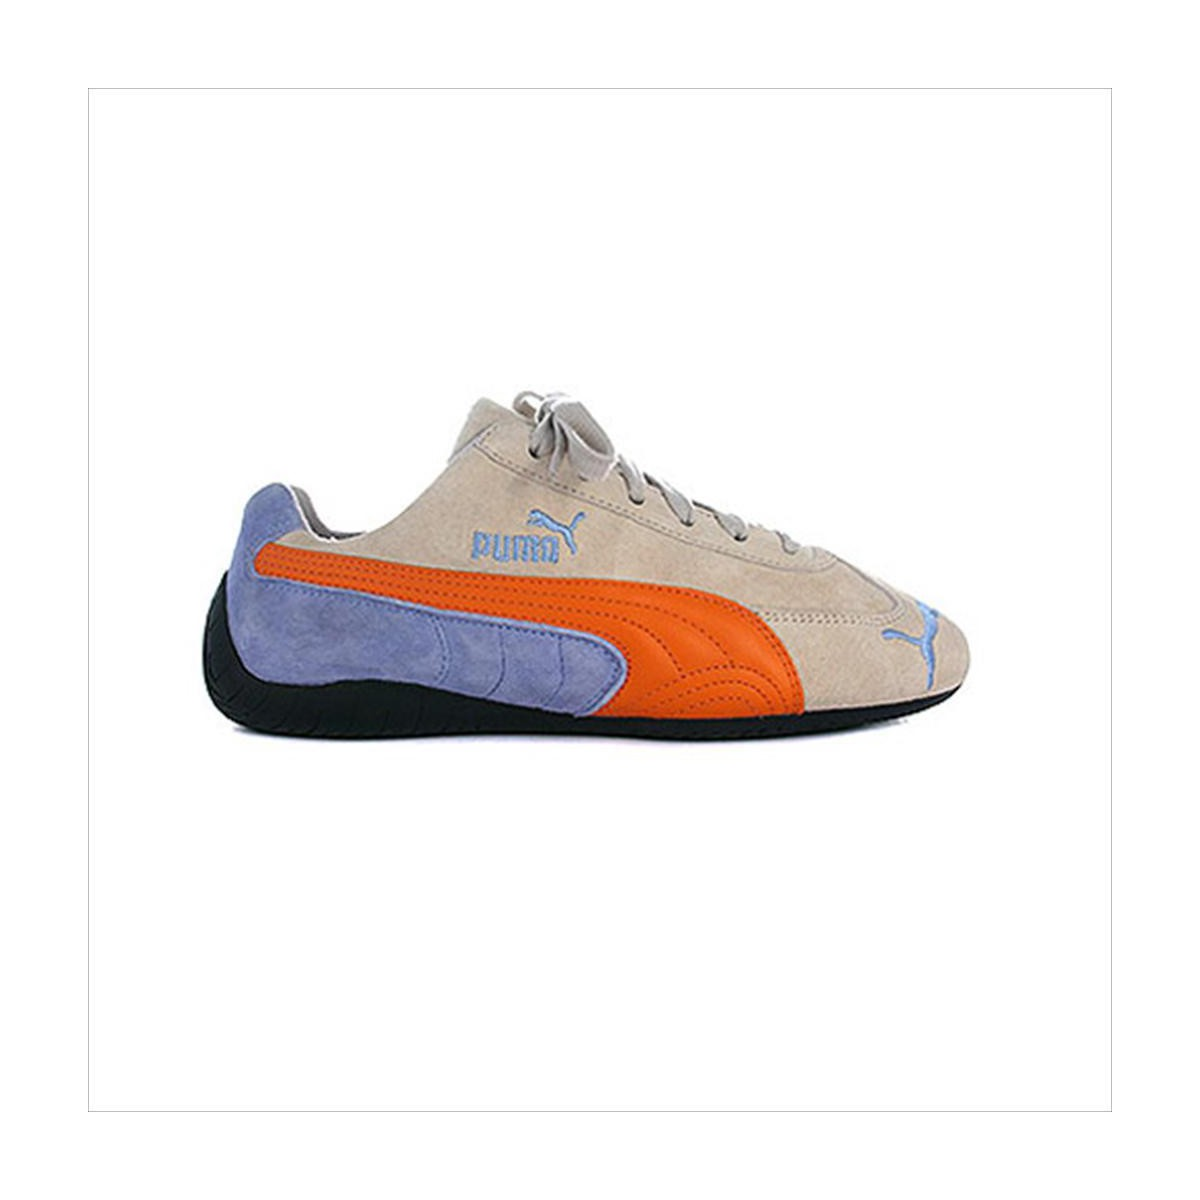 Puma Speed Cat Bleu-Creme-Orange